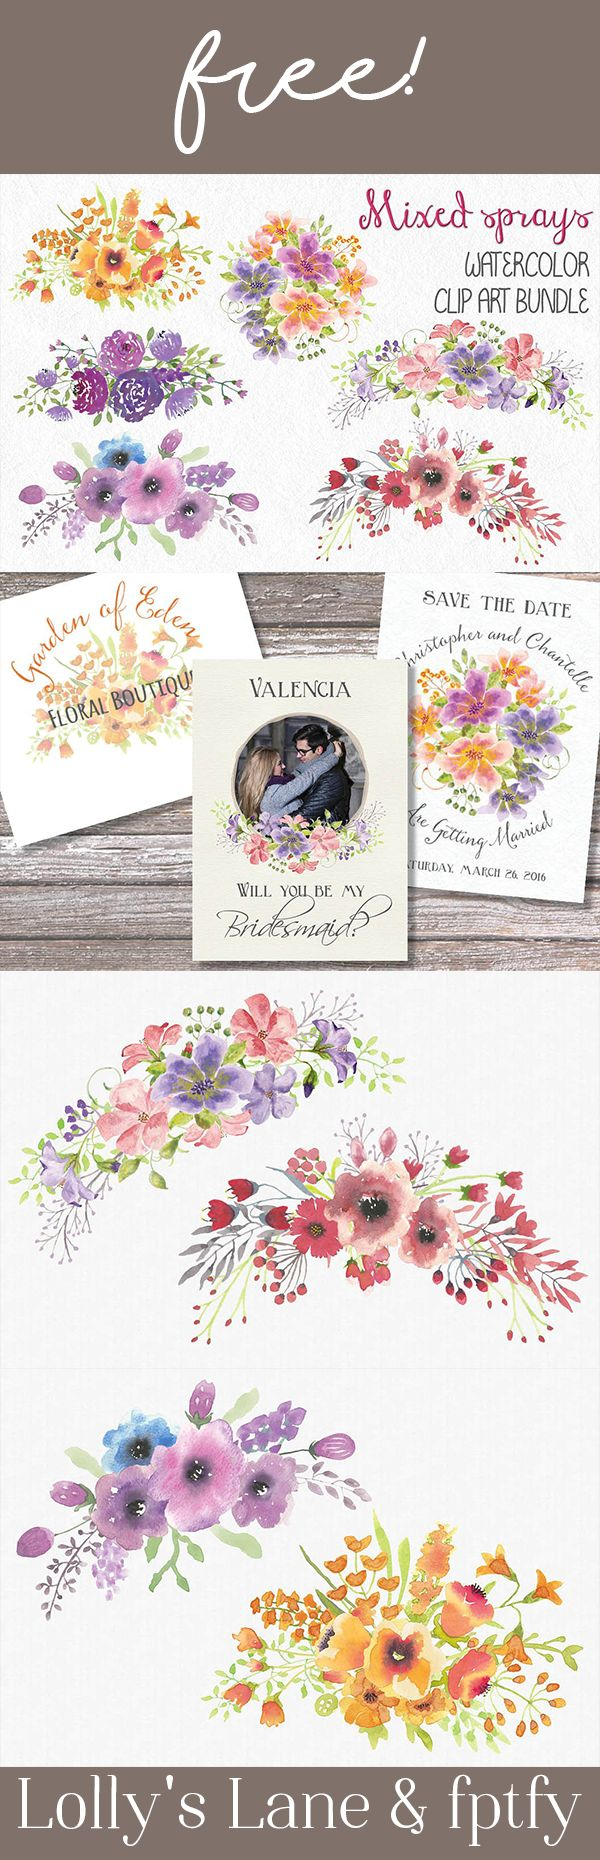 Featured Designer: Lolly's Lane + Free Mixed Floral Sprays